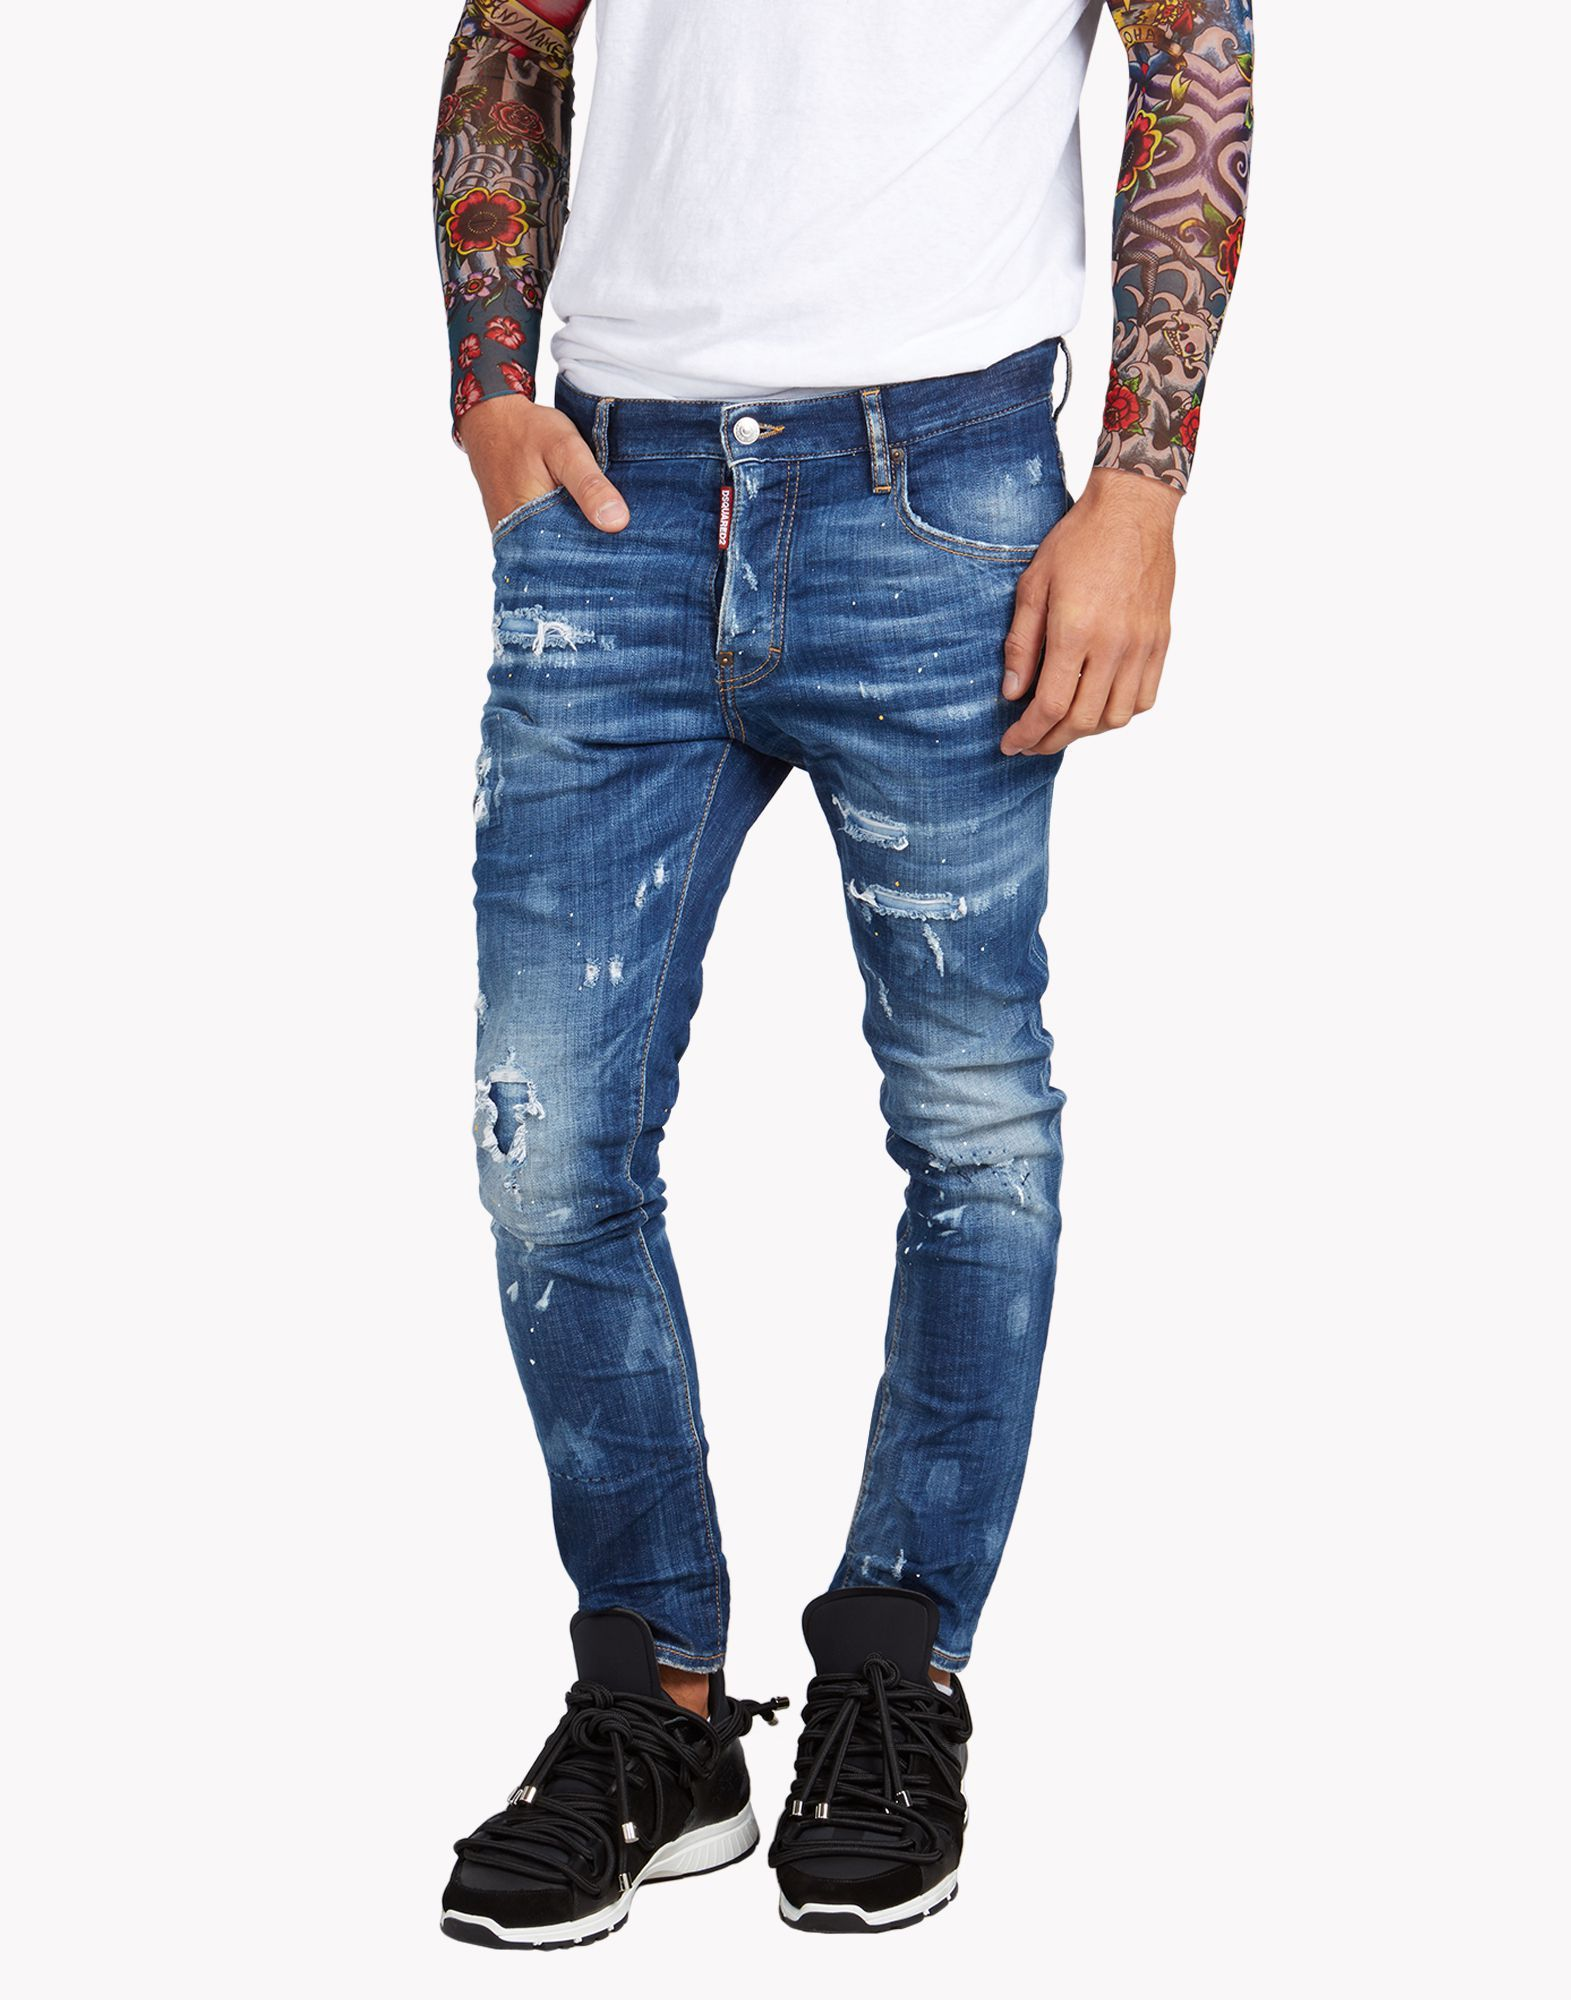 da1debc0 Dsquared2 Skater Jeans, 5 Pockets Men - Dsquared2 Online Store ...